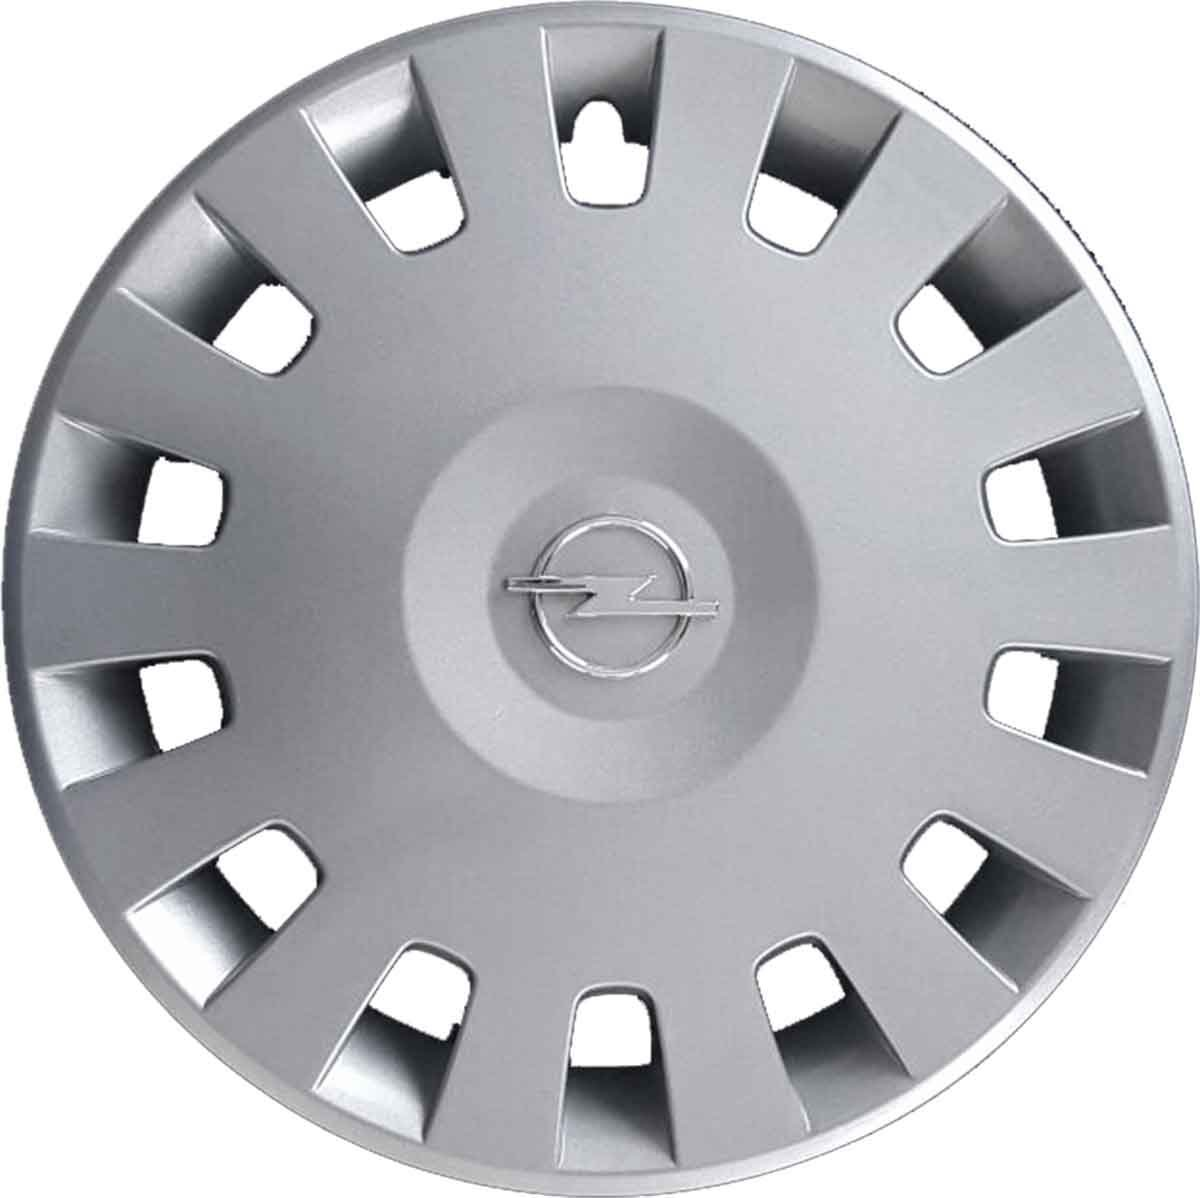 Wheel trim cover cup Rose JSS412- 14 Opel Corsa from 2000 Not Original Aftermarket